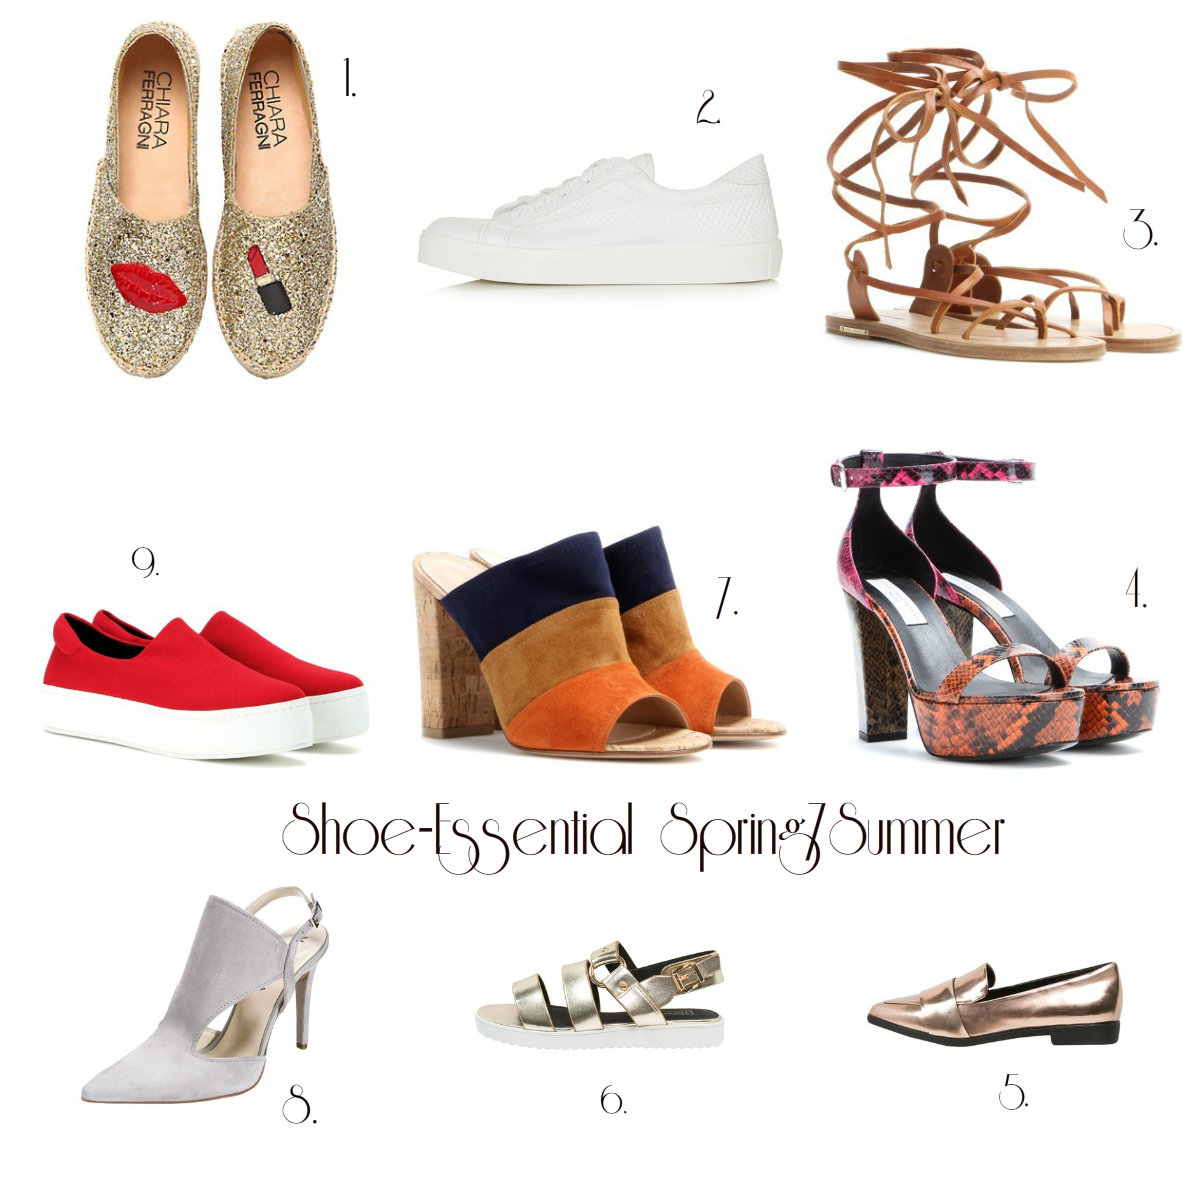 Fashion_Shoe_Essentials_Collage